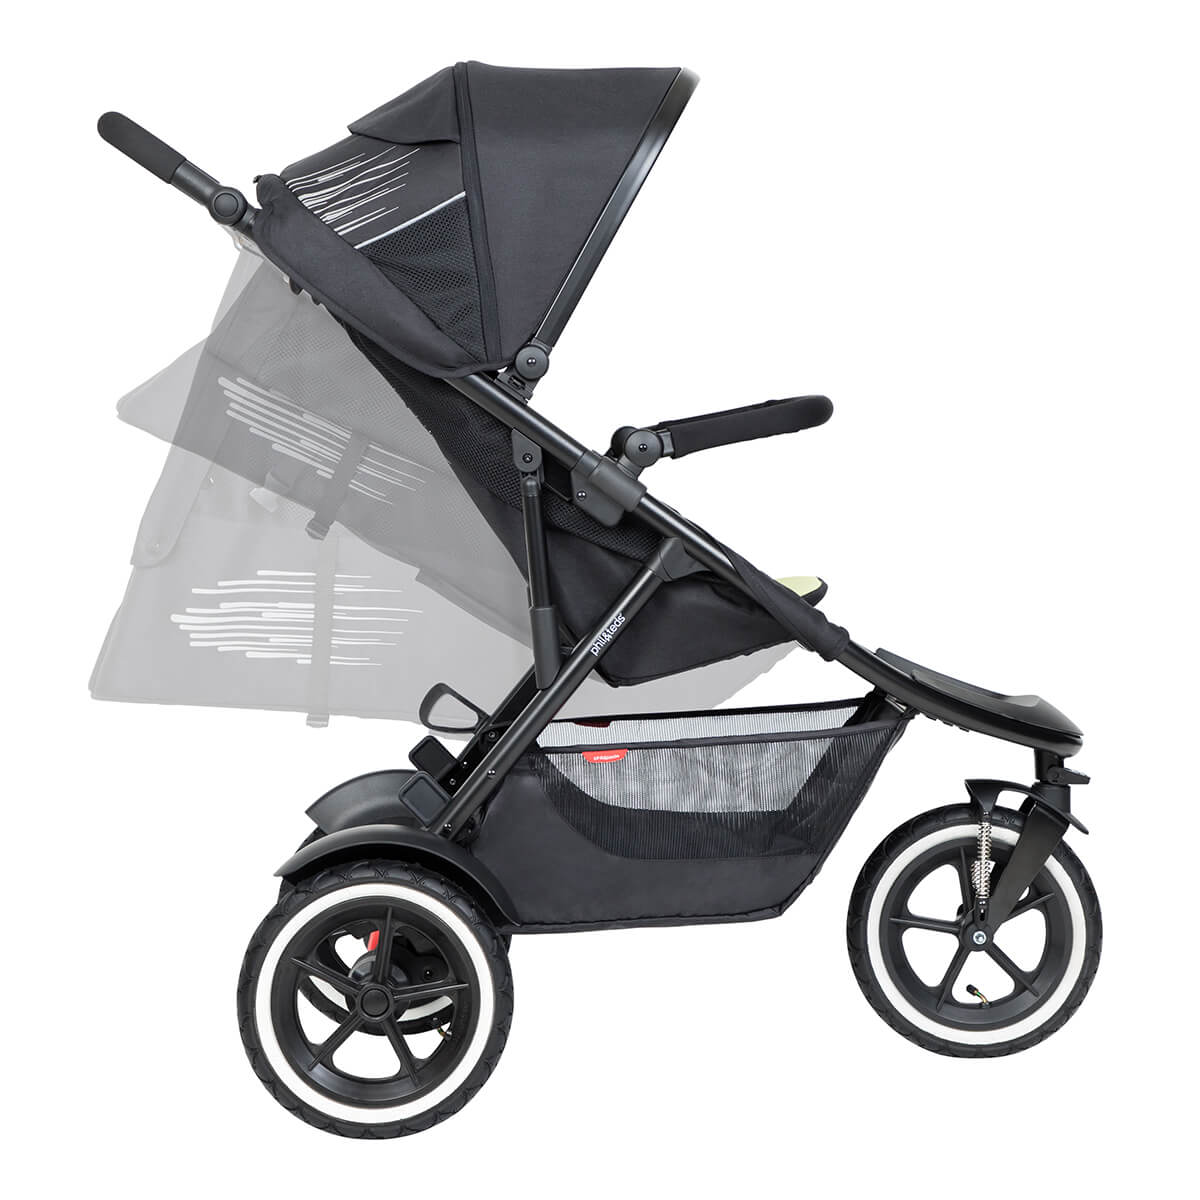 https://cdn.accentuate.io/4394876928105/19119322628201/philteds-sport-buggy-can-recline-in-multiple-angles-including-full-recline-for-newborn-baby-v1626484877860.jpg?1200x1200